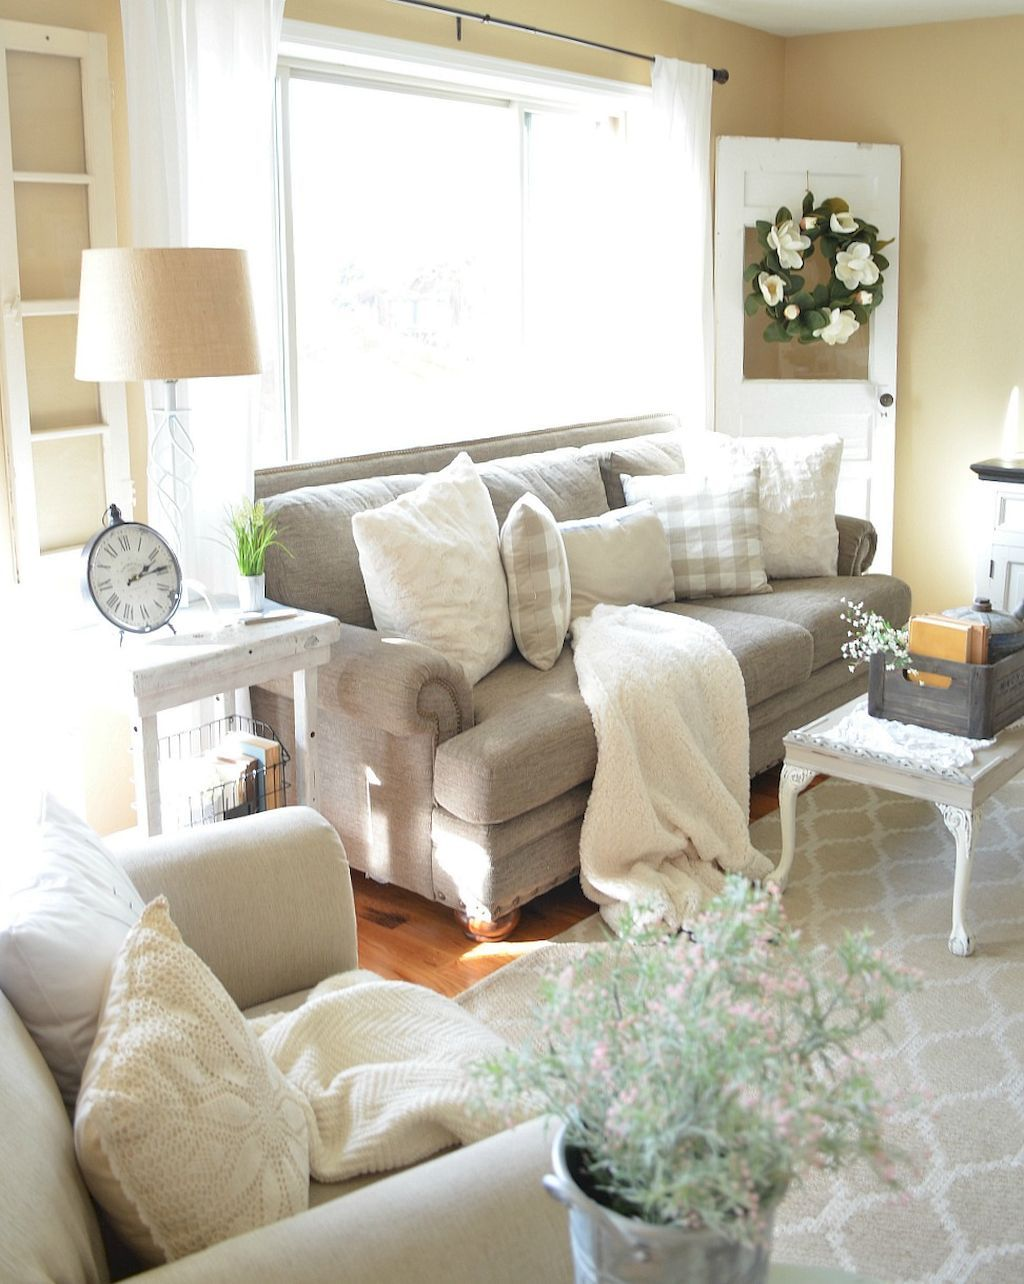 50 Rustic Farmhouse Living Room Design and Decoration Ideas ...